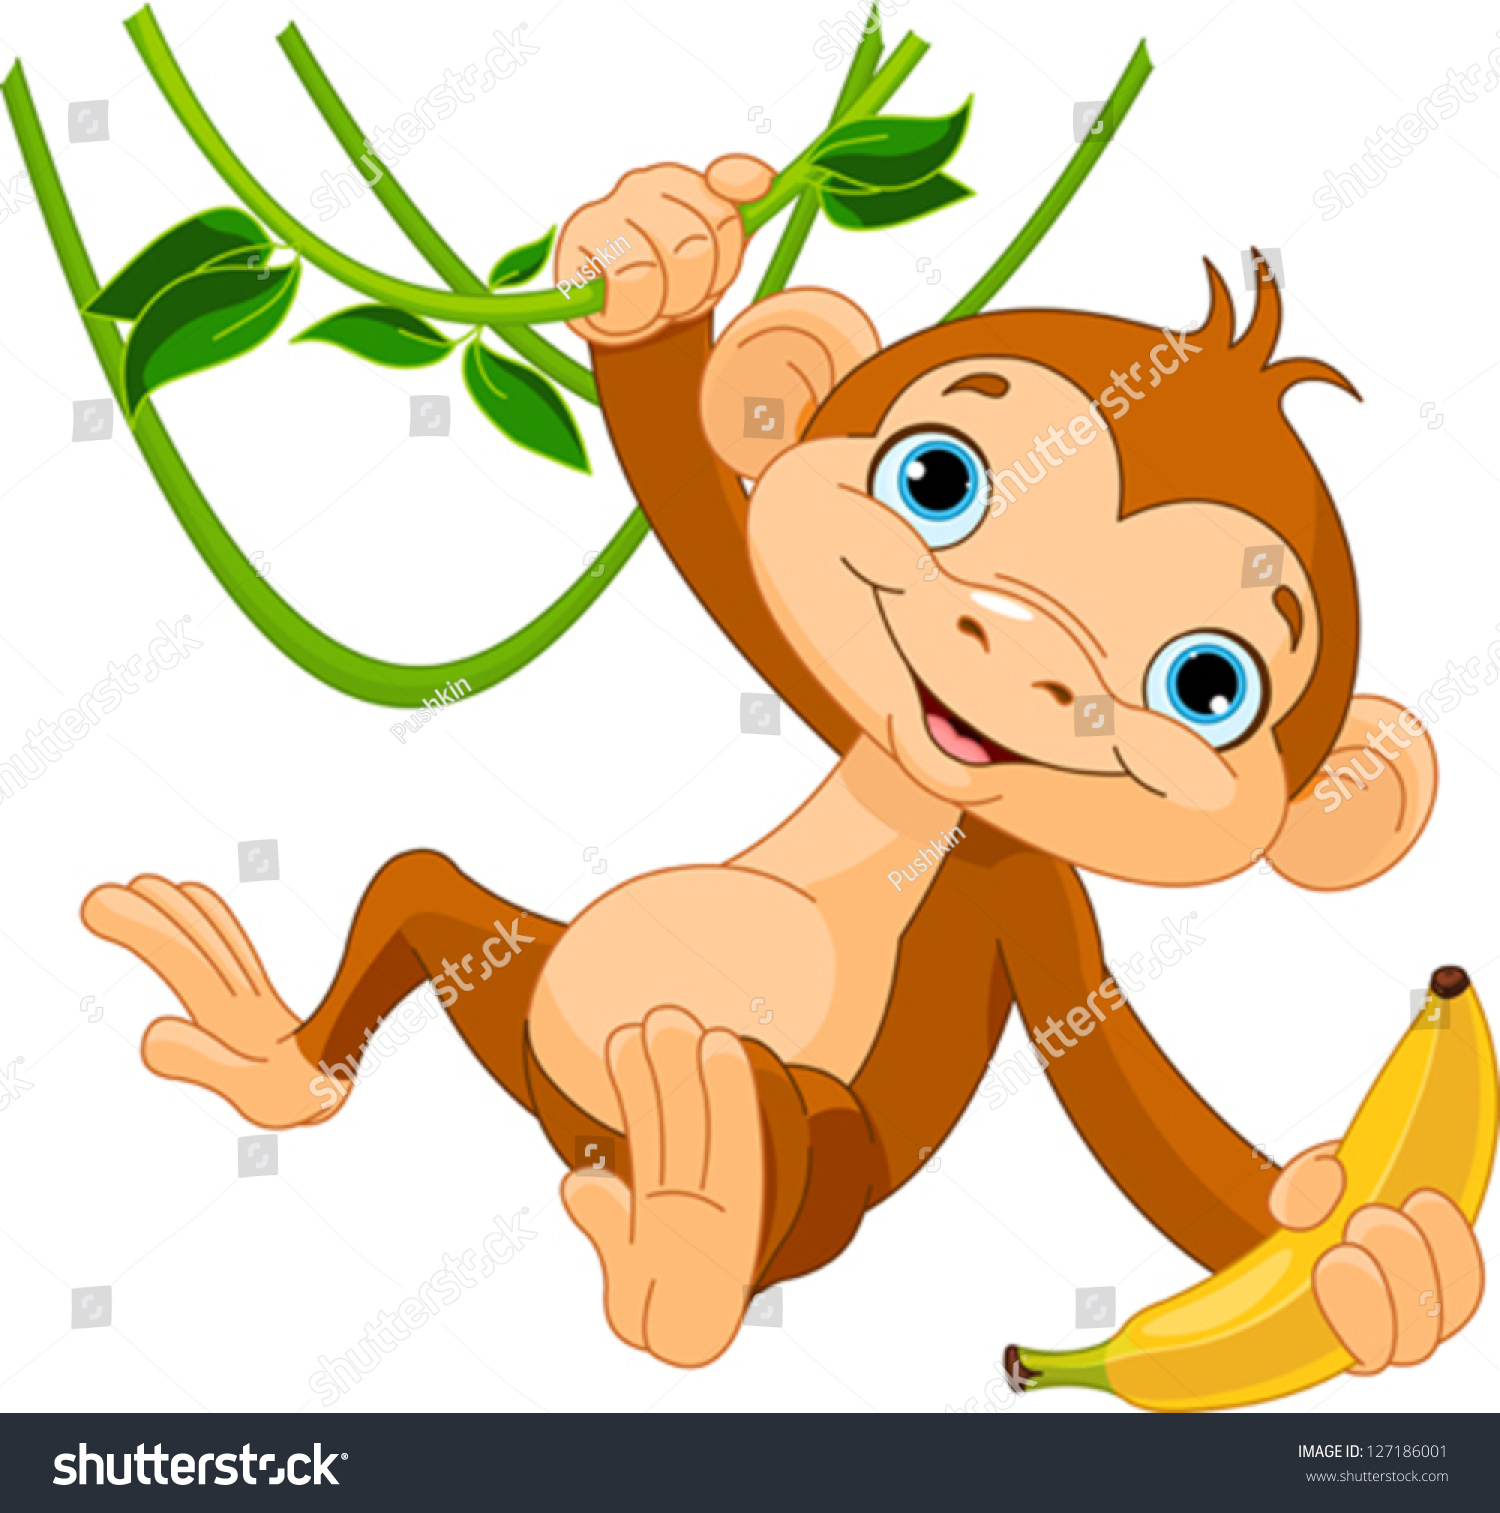 Gallery For gt Cartoon Baby Monkey Hanging